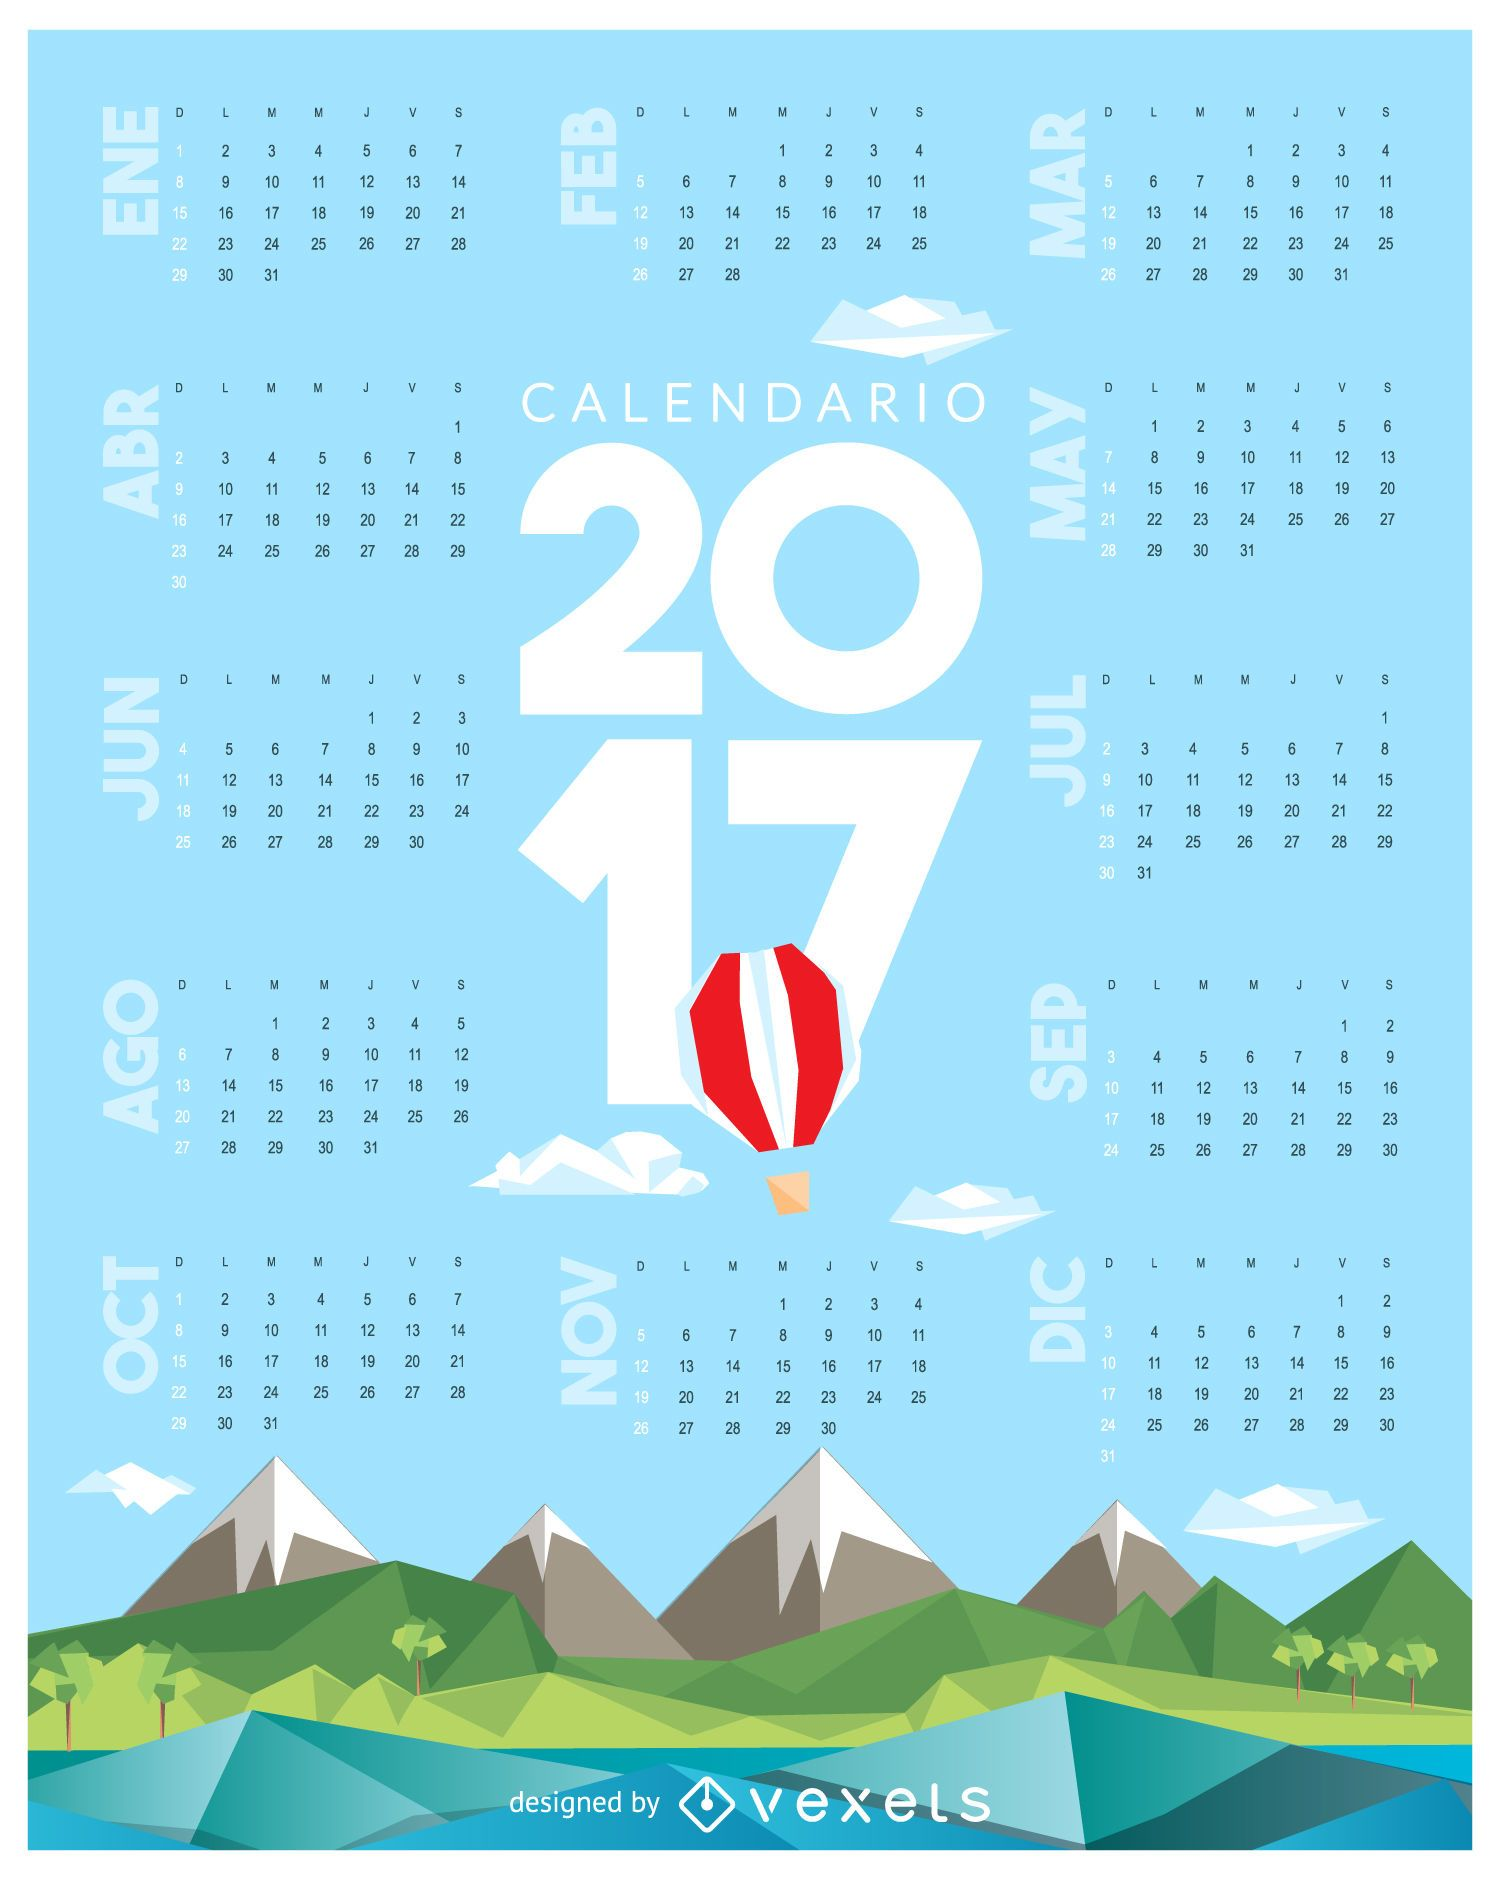 2017 low poly calendar in Spanish